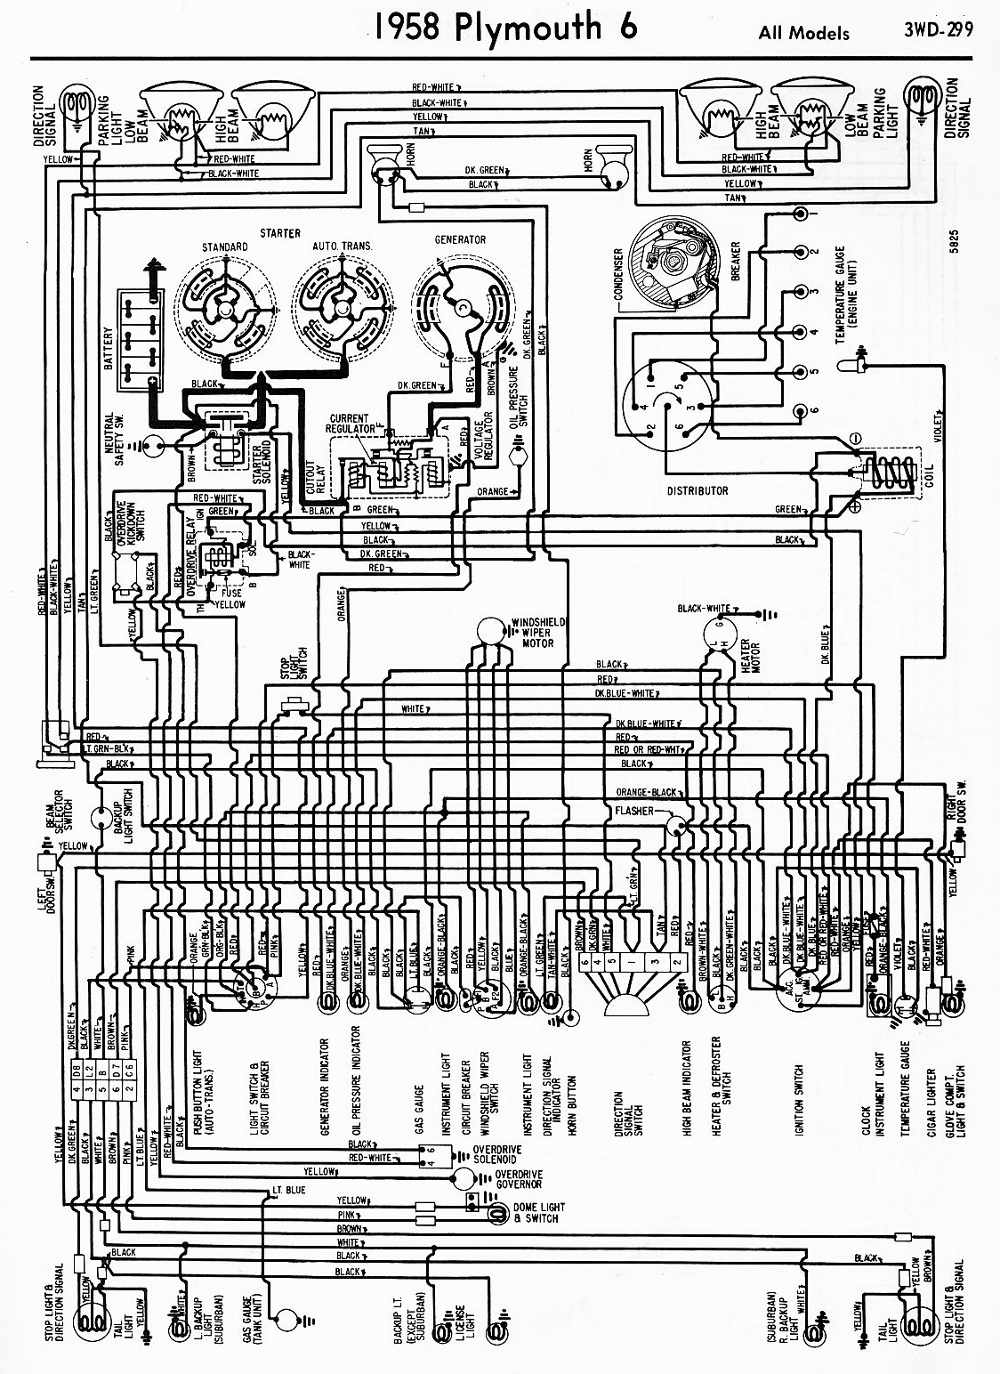 1948 packard wiring diagram wiring diagram technic 1949 packard wiring diagram wiring diagrams konsult1949 packard wiring [ 1000 x 1374 Pixel ]